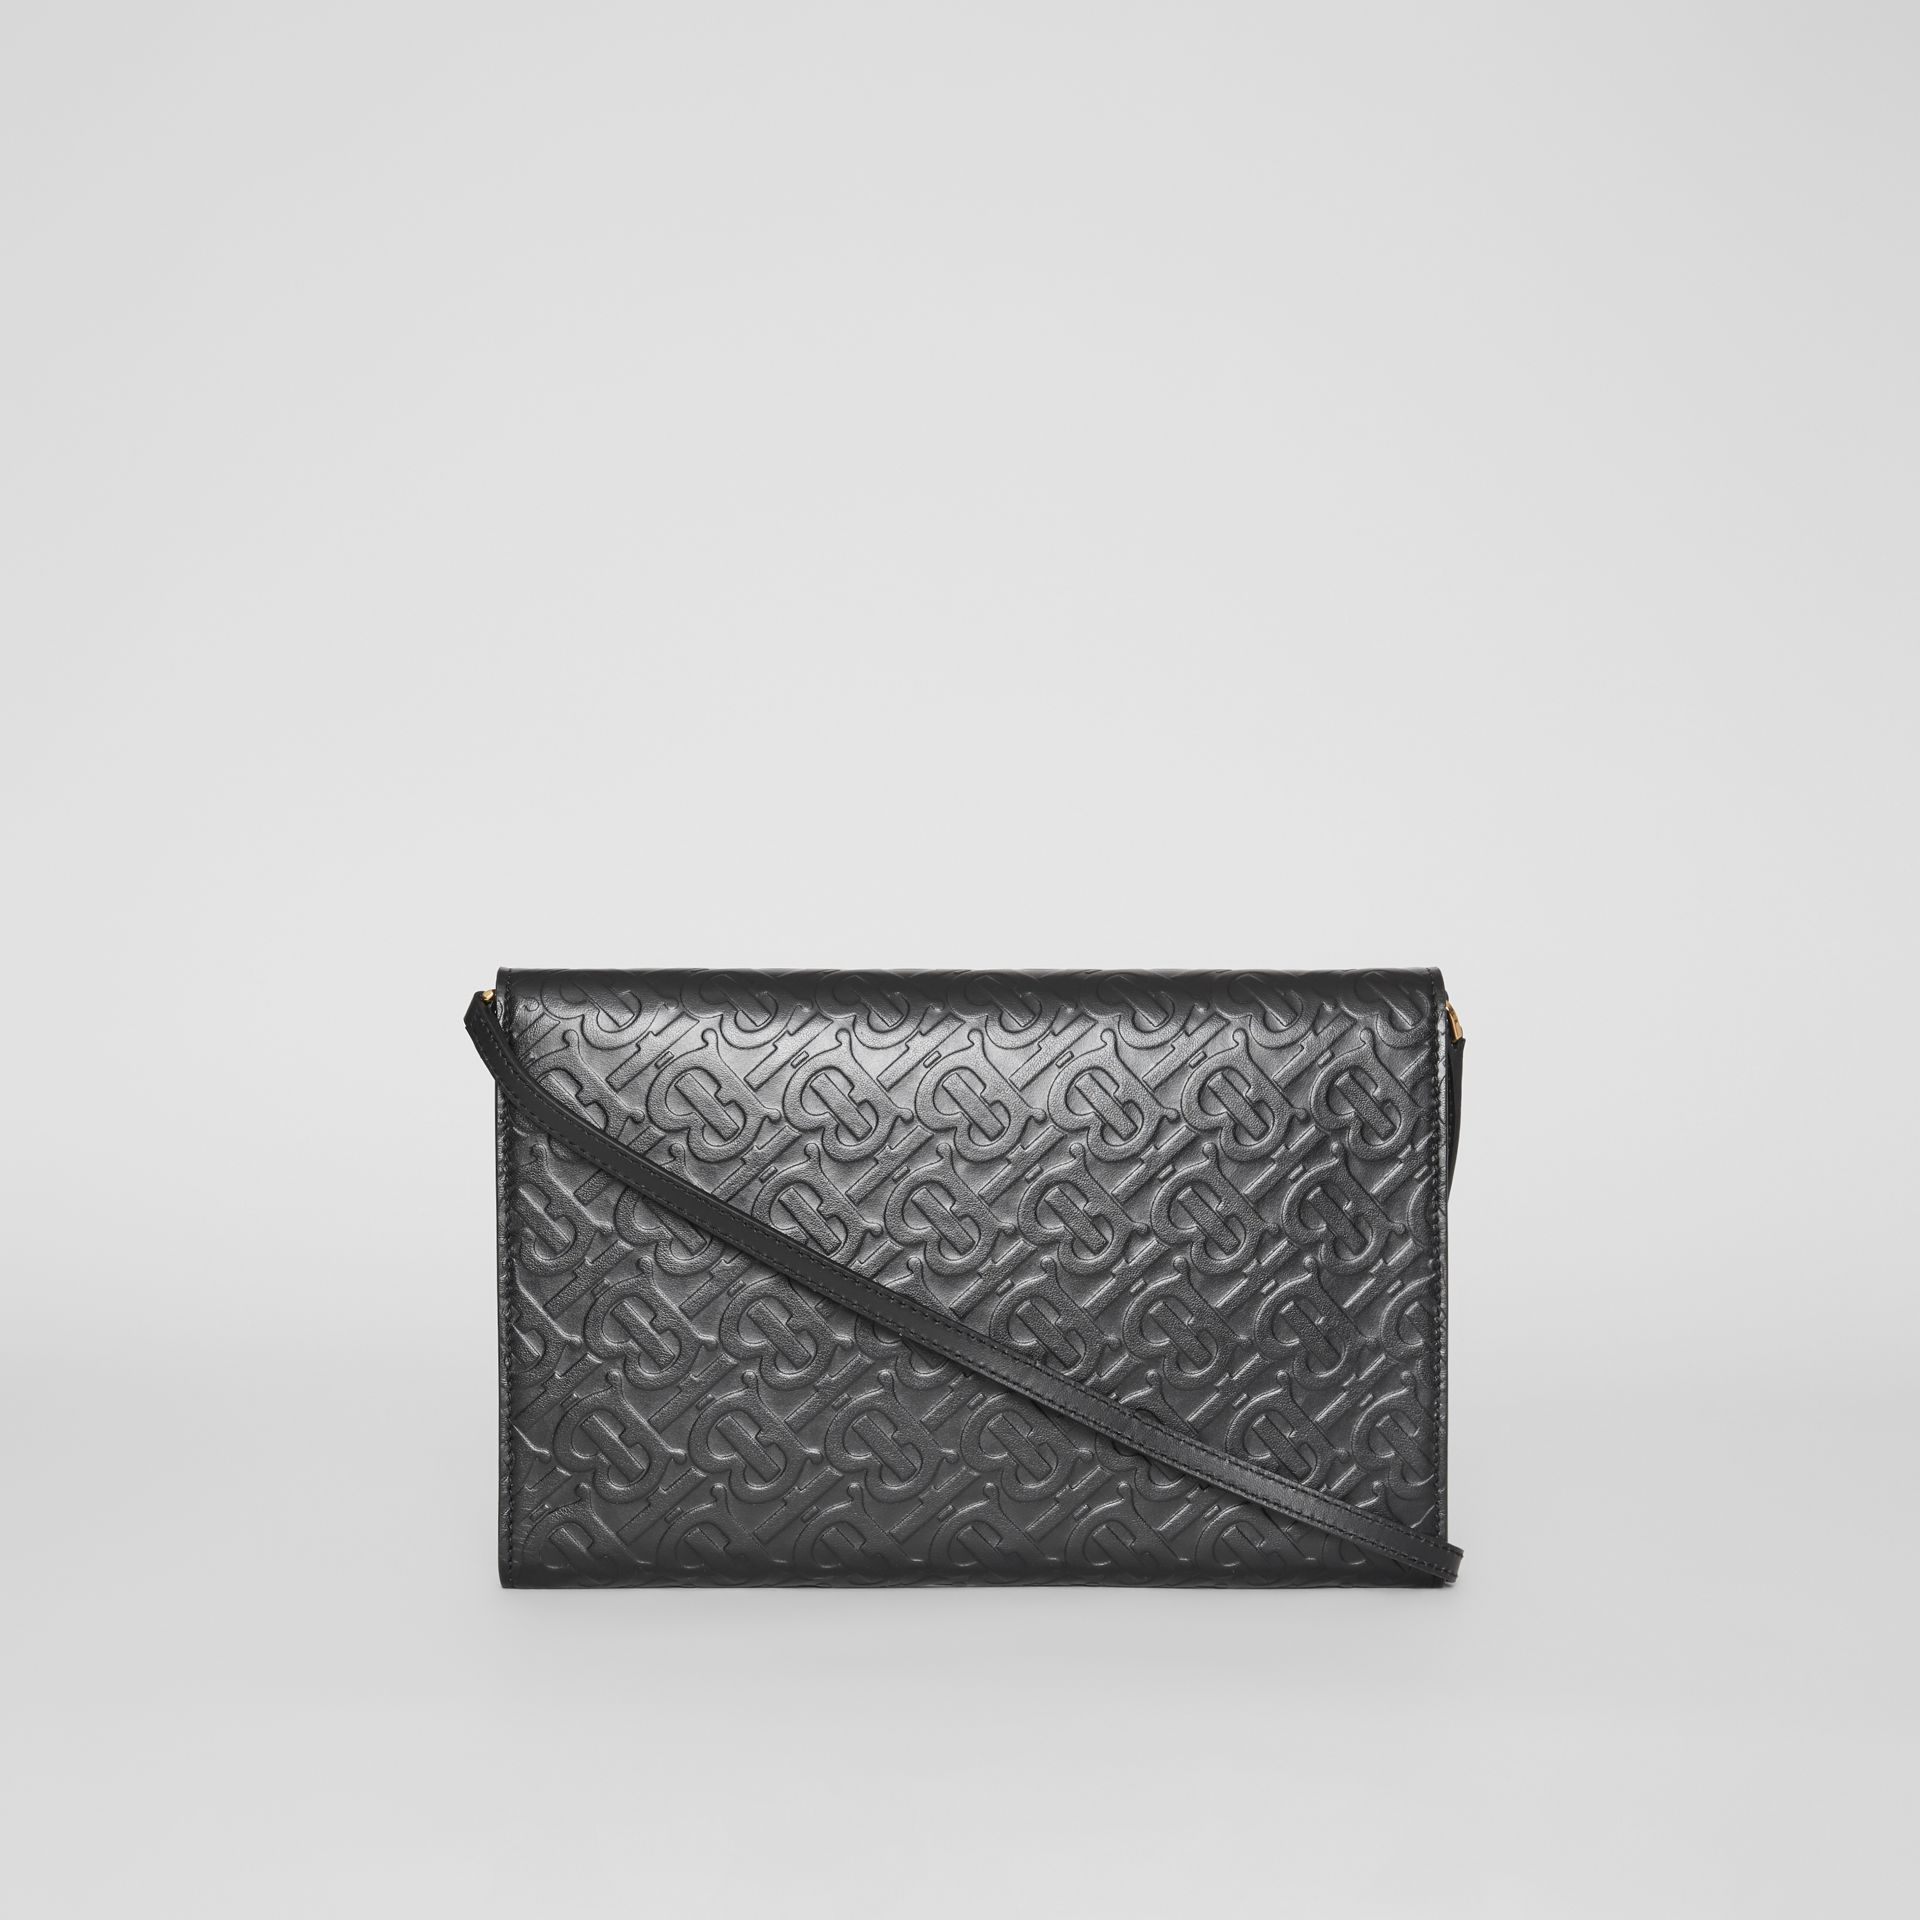 Small Monogram Leather Bag with Detachable Strap in Black - Women | Burberry - gallery image 7